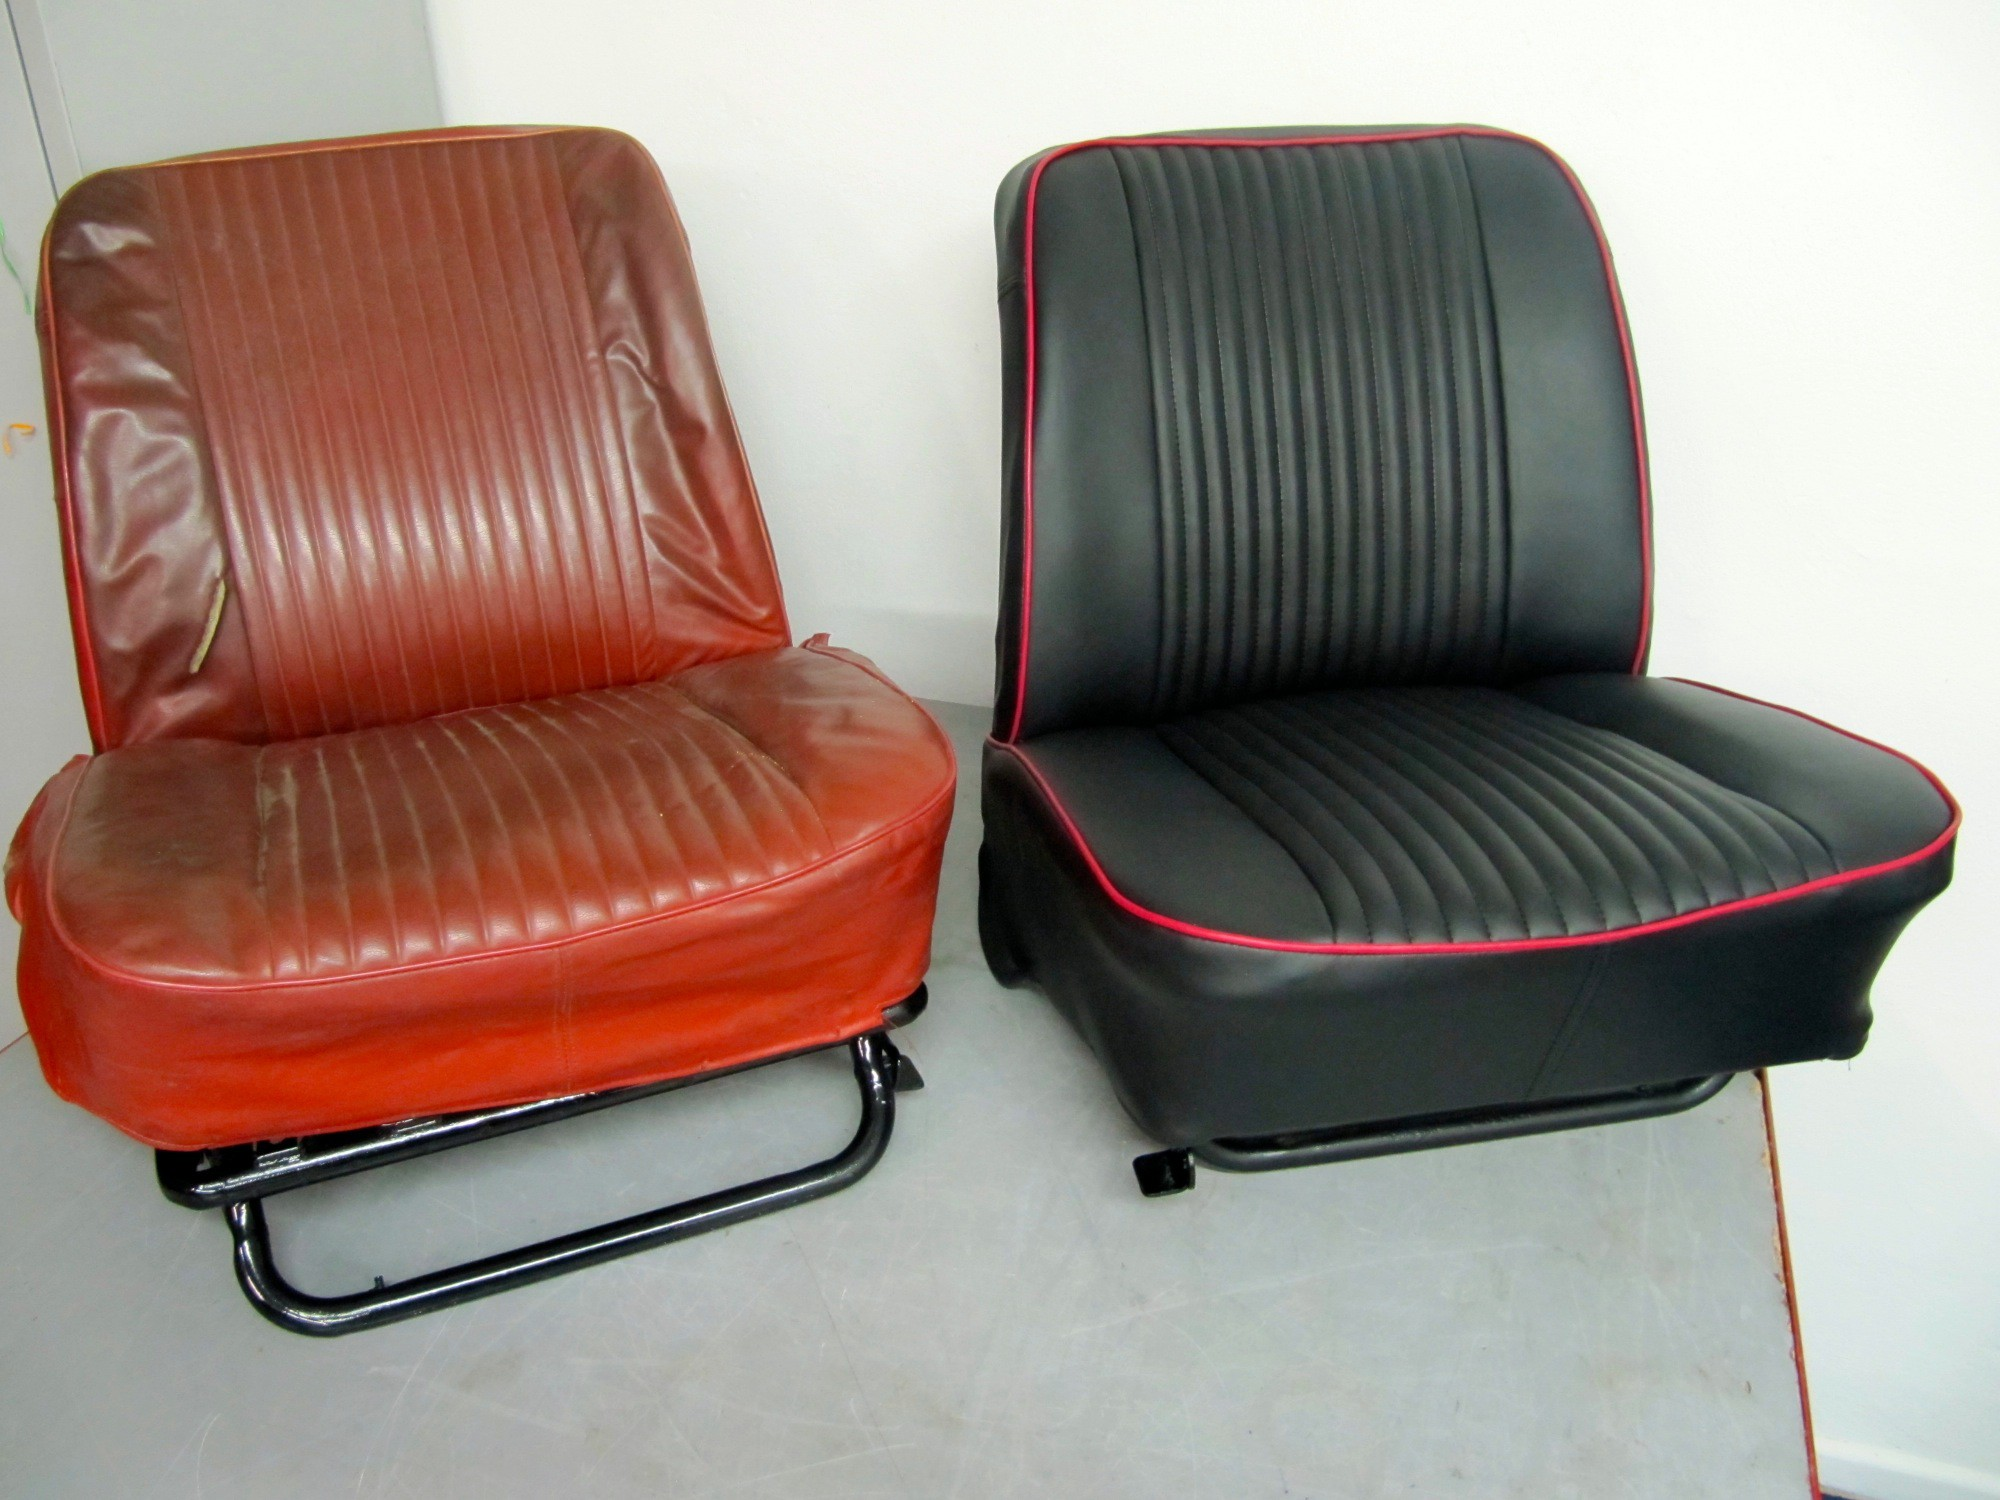 FORD ANGLIA FRONT SEAT RETRIM. This is the before and after Photos. Please Ask For More Details.